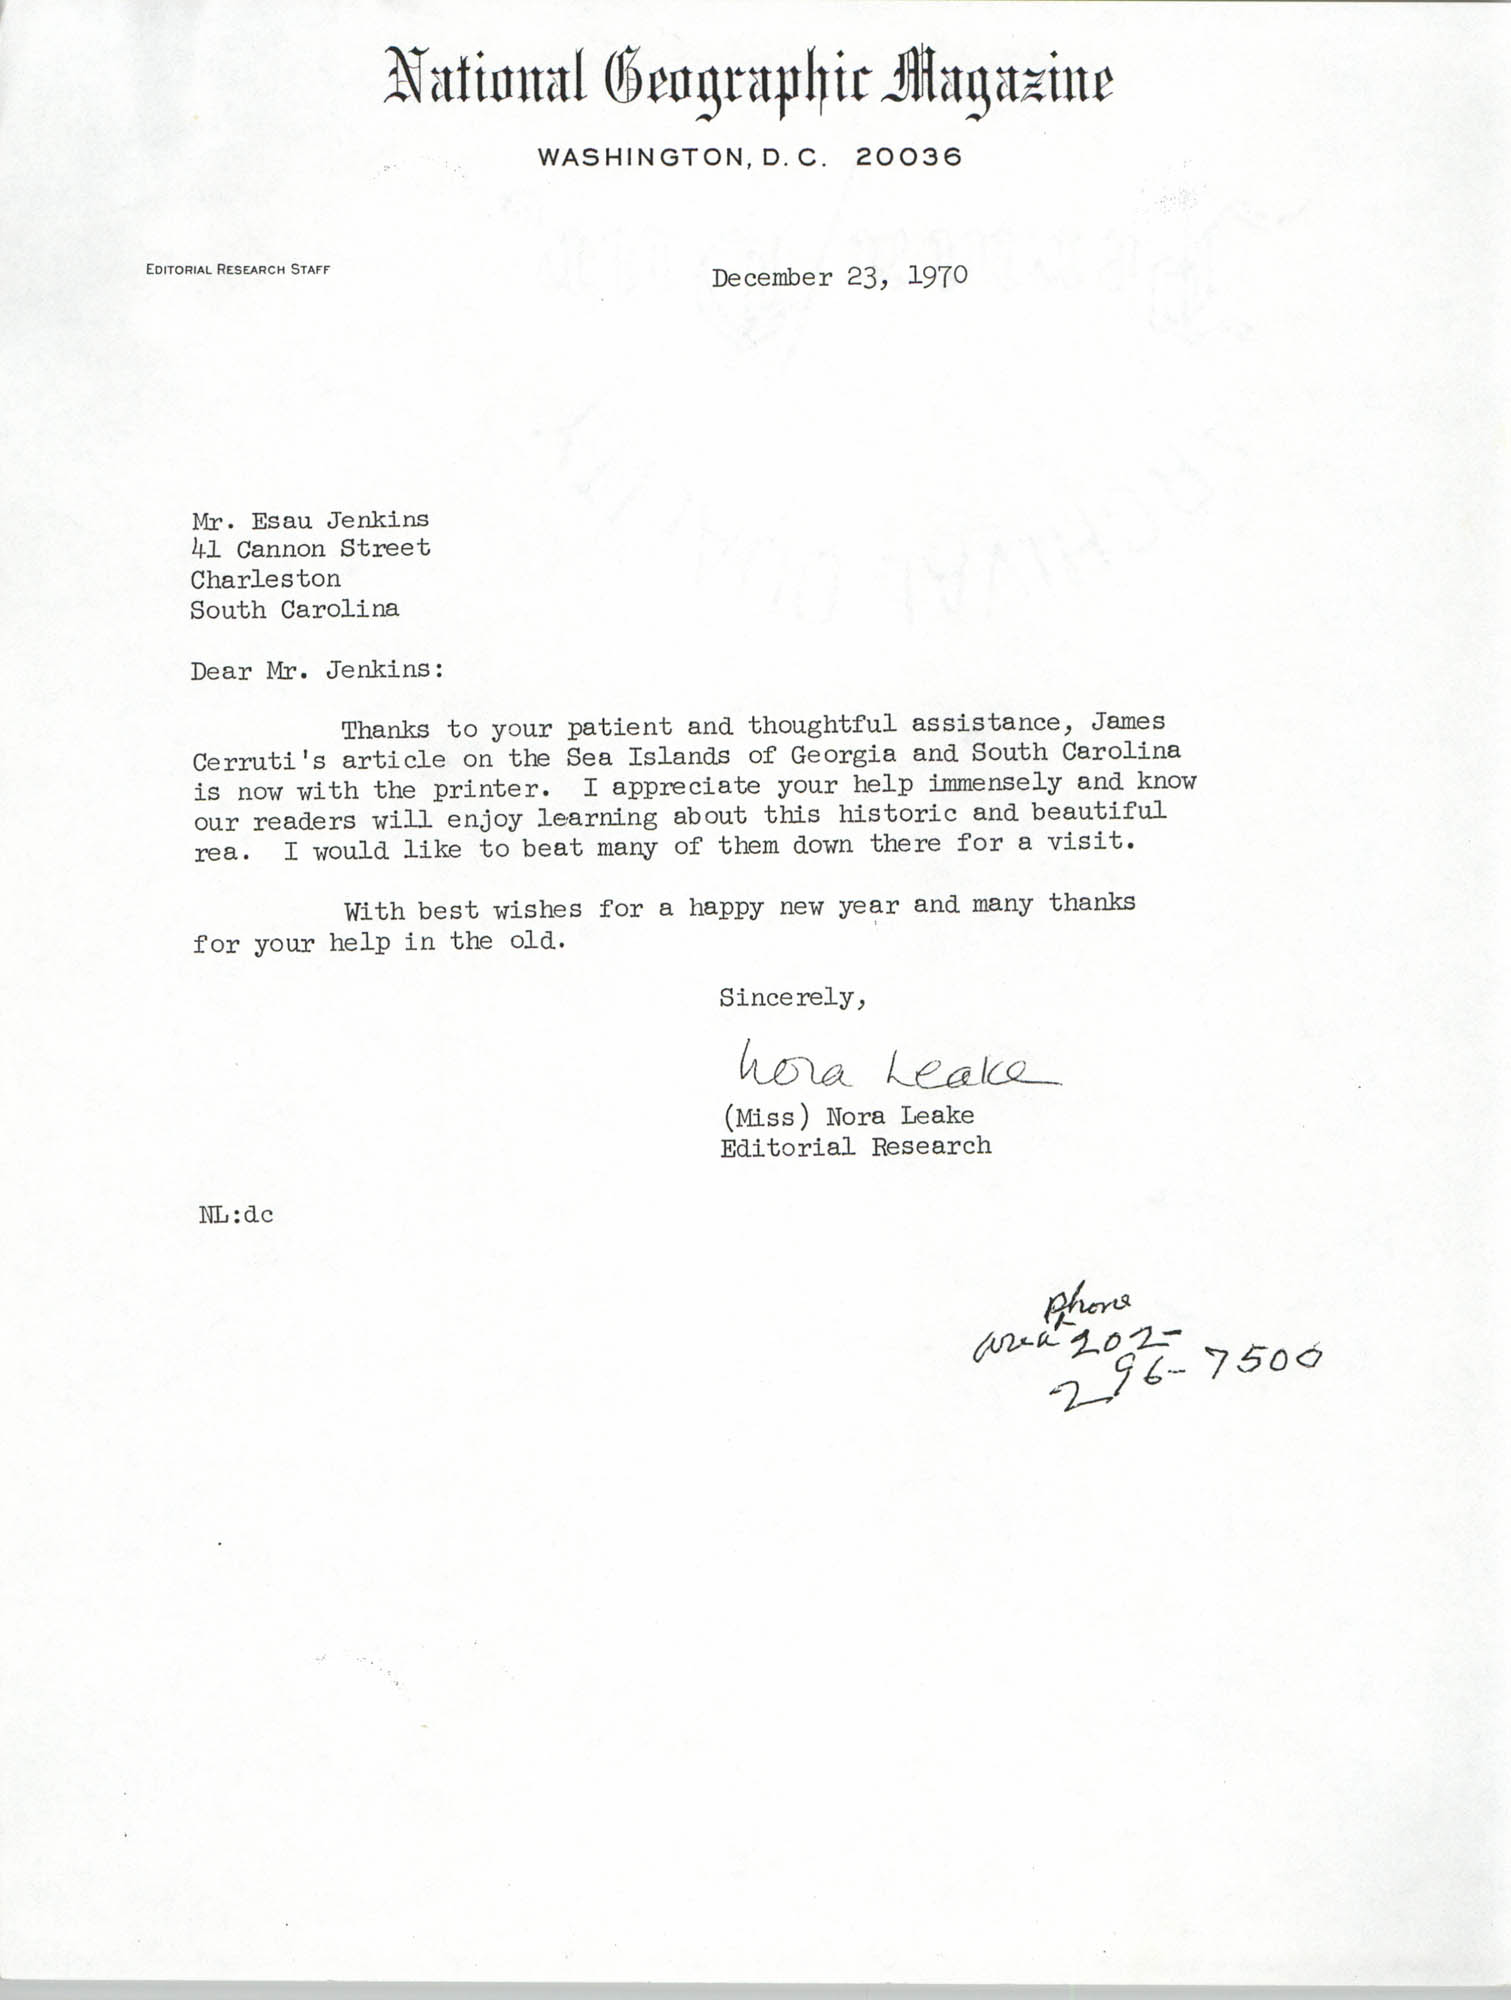 Letter from Nora Leake to Esau Jenkins, December 23, 1970